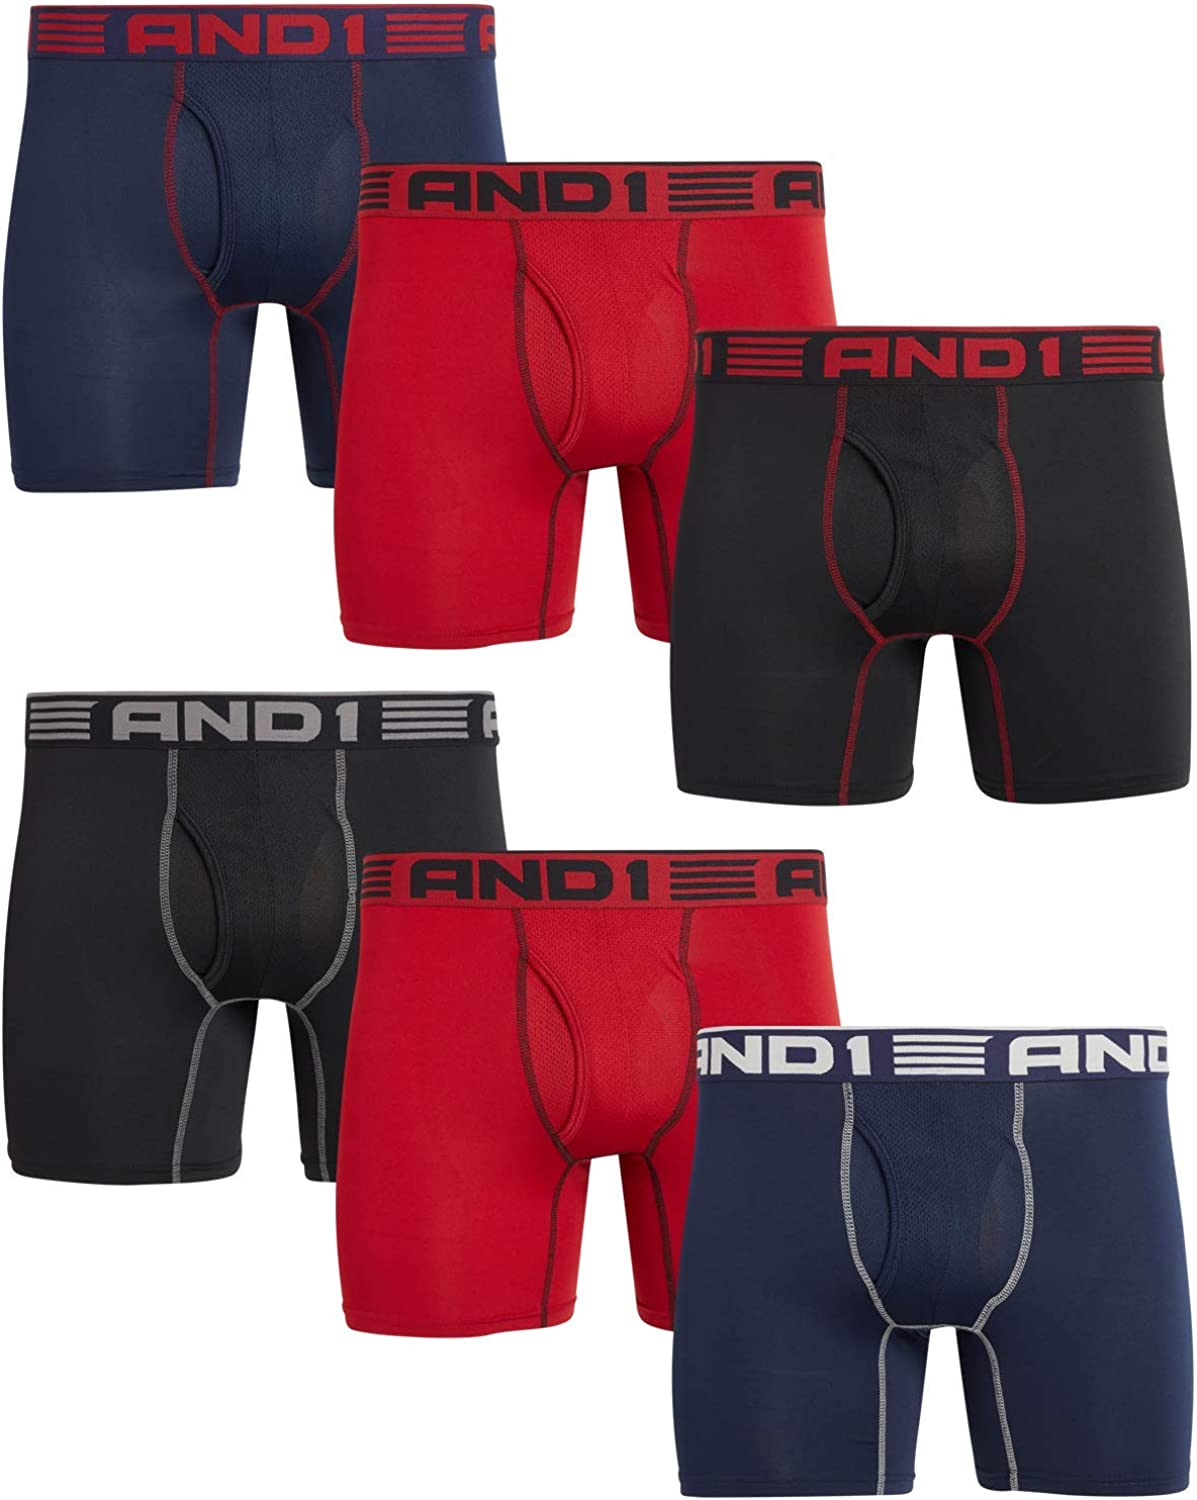 AND1 Men's Underwear – Performance Compression Boxer Briefs, Functional Fly (6 Pack)